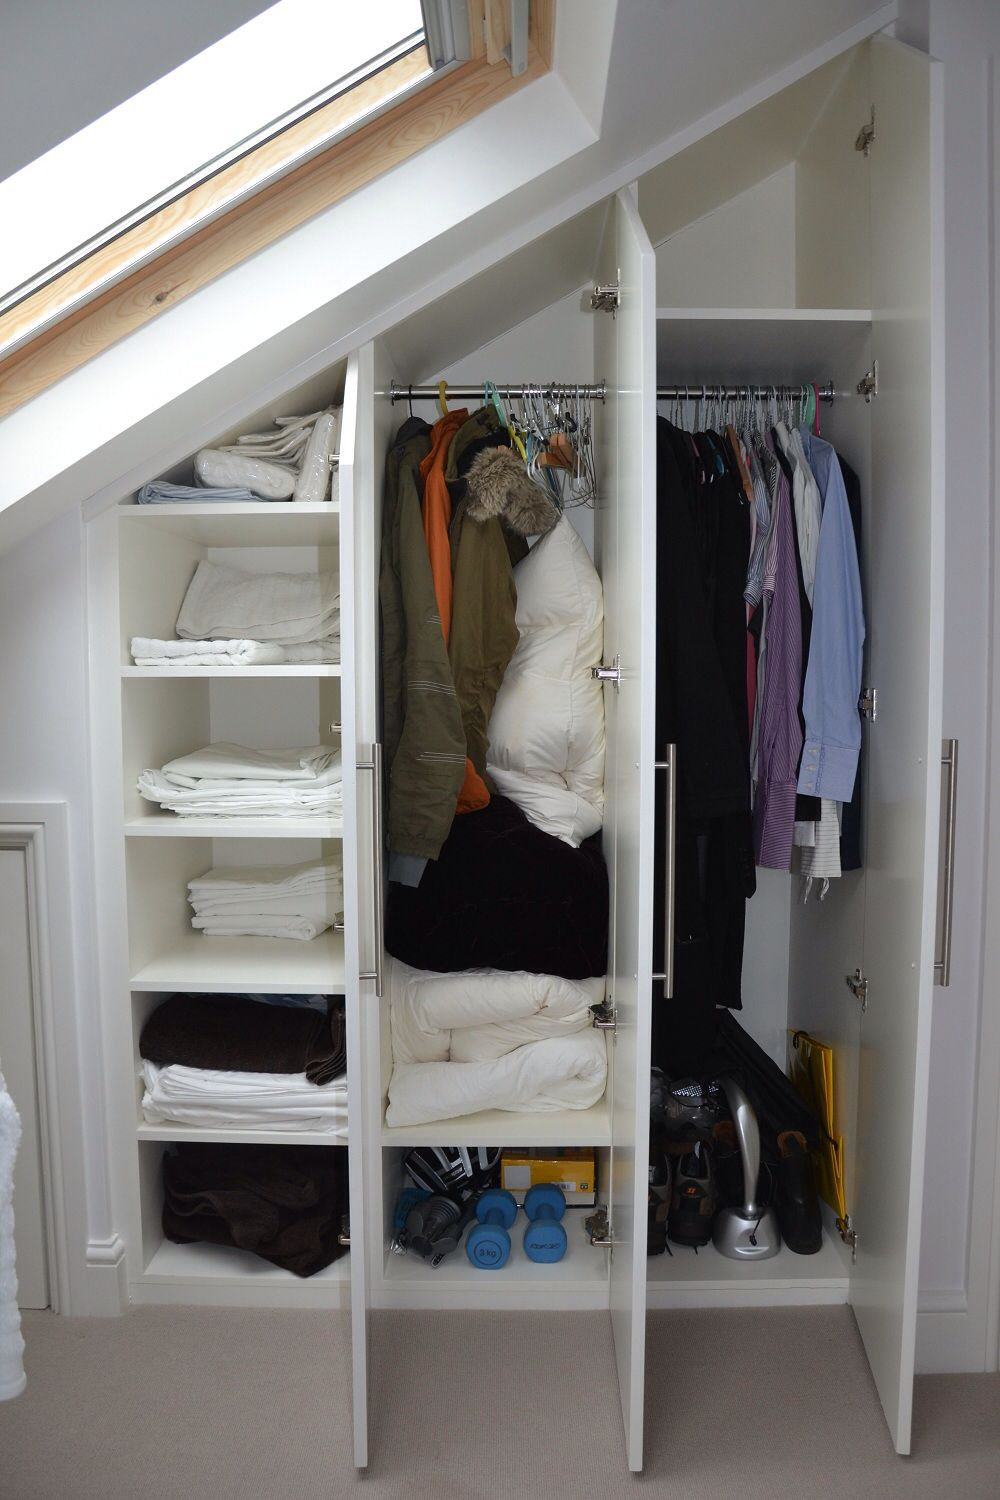 Loft bedroom closets  Loft conversion wardrobe  Ideas for the House  Pinterest  Lofts